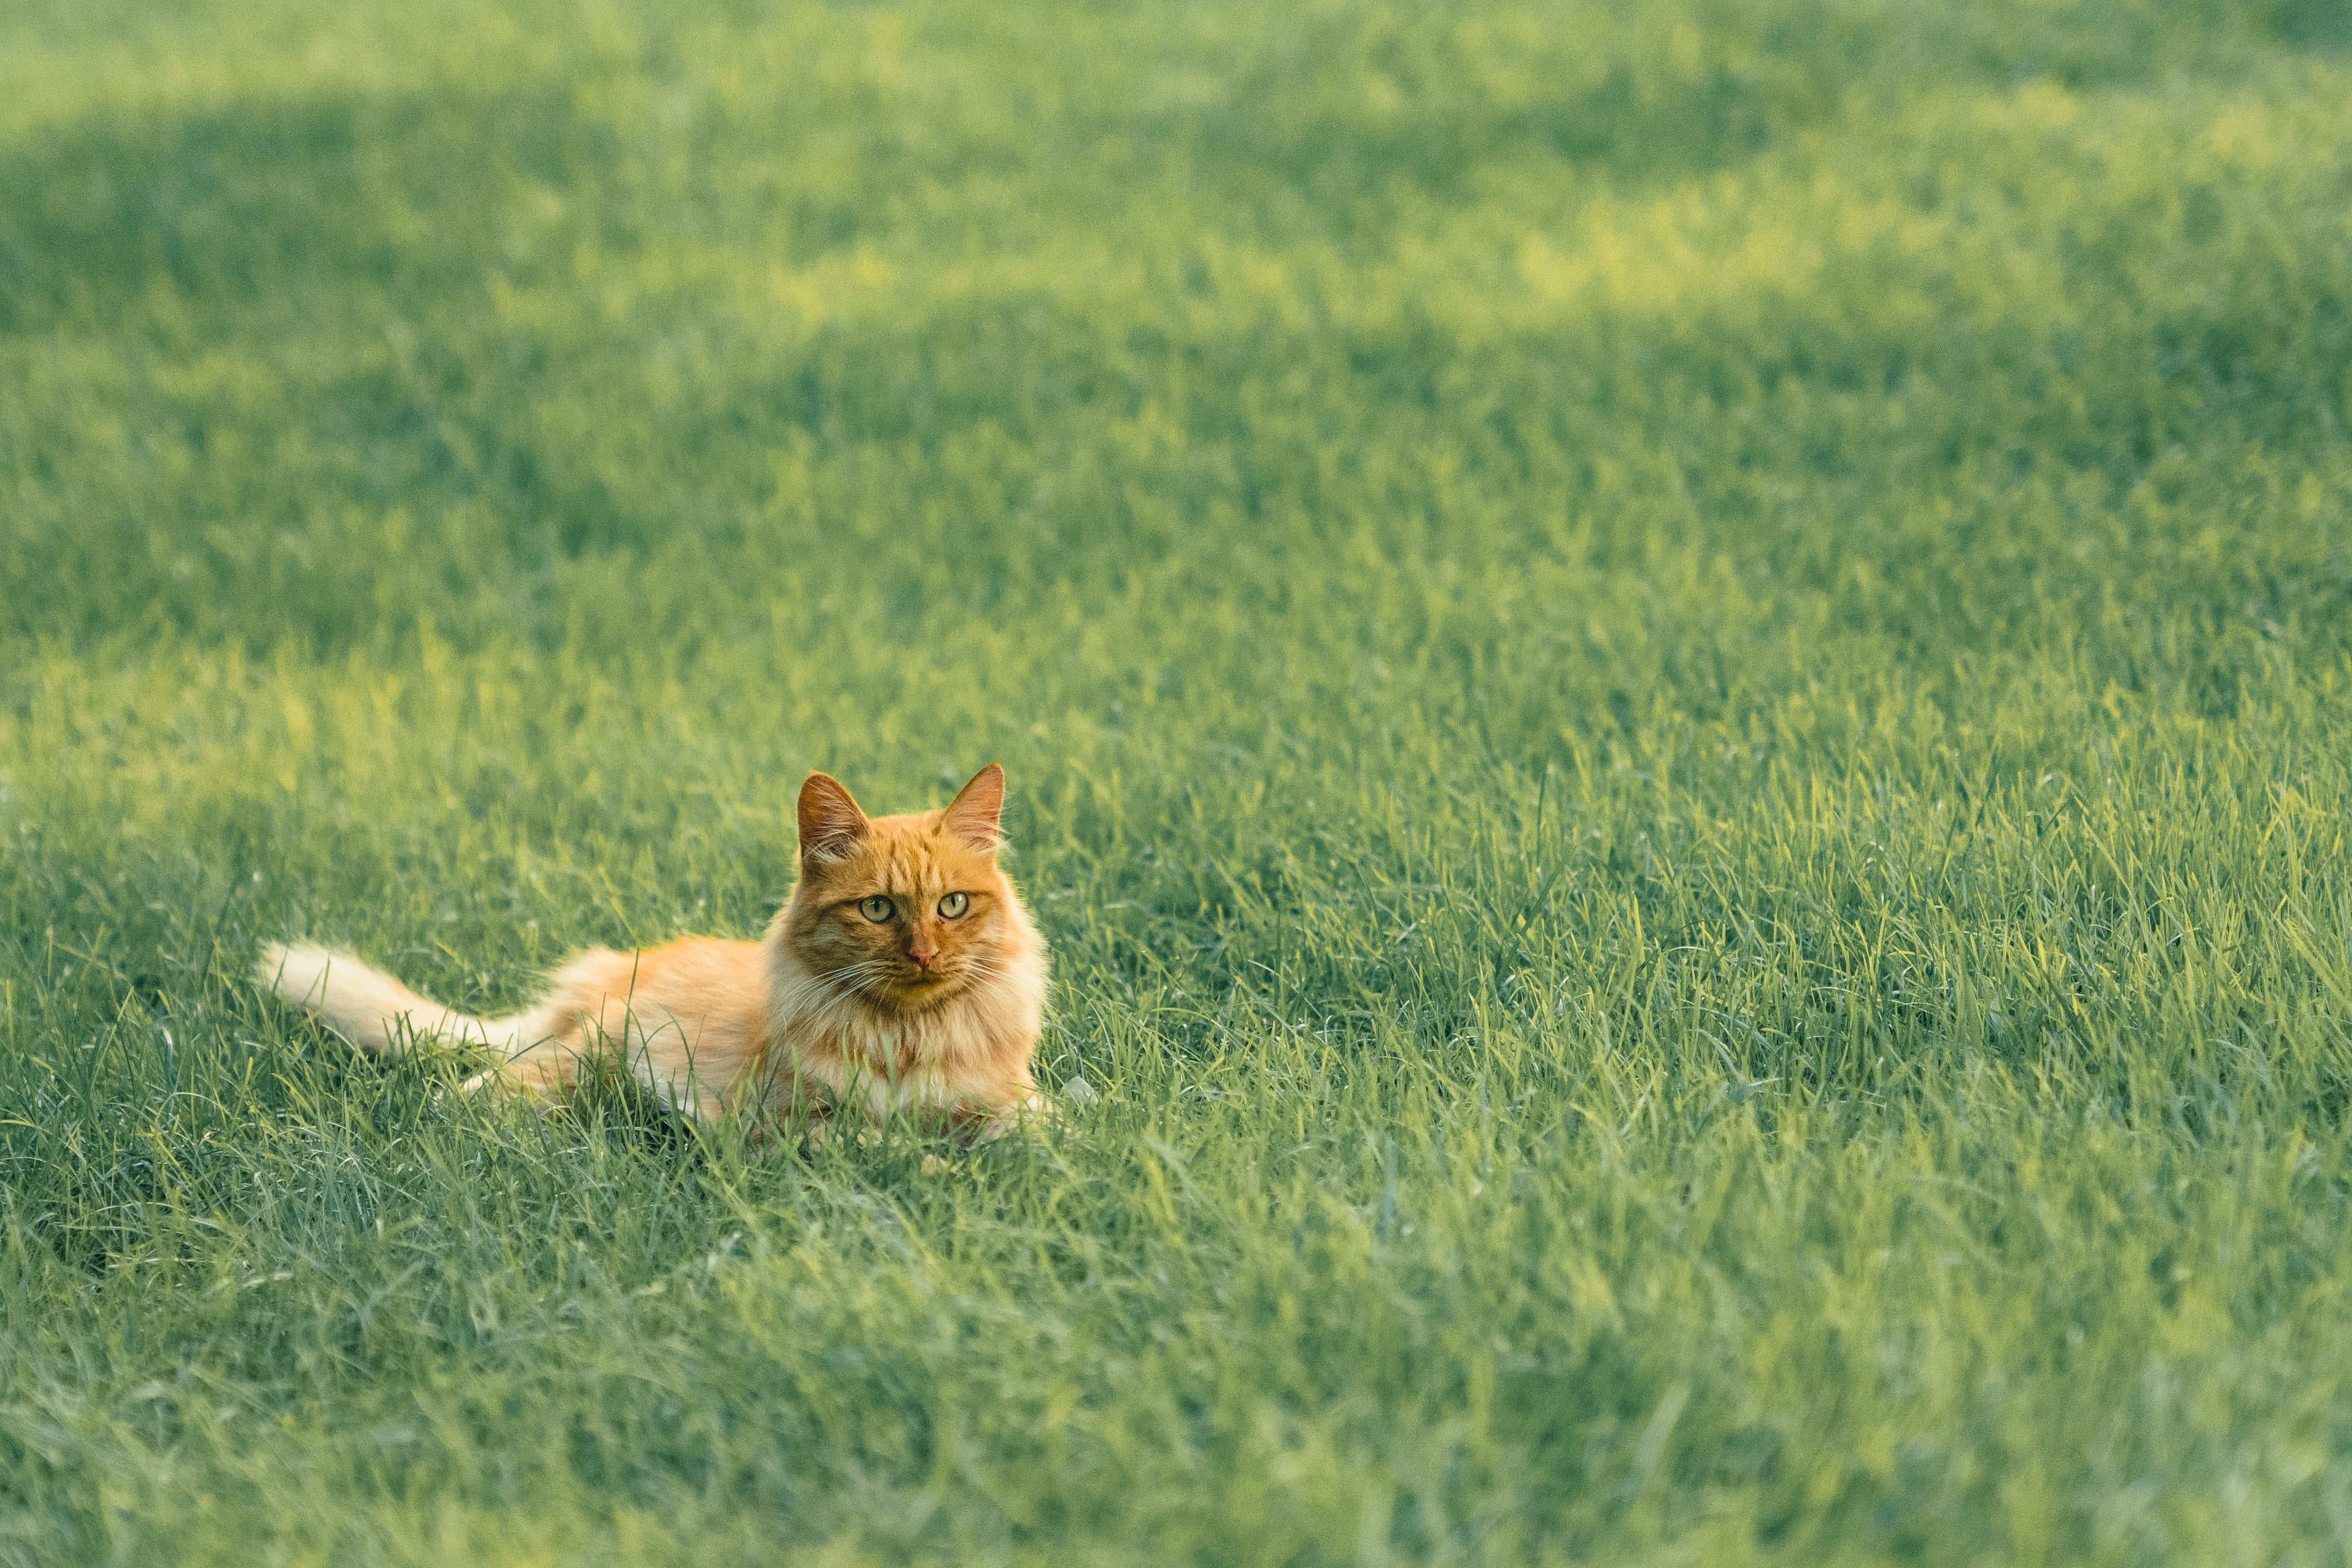 99342 download wallpaper Animals, Cat, Pet, Fluffy, Redhead, Grass screensavers and pictures for free